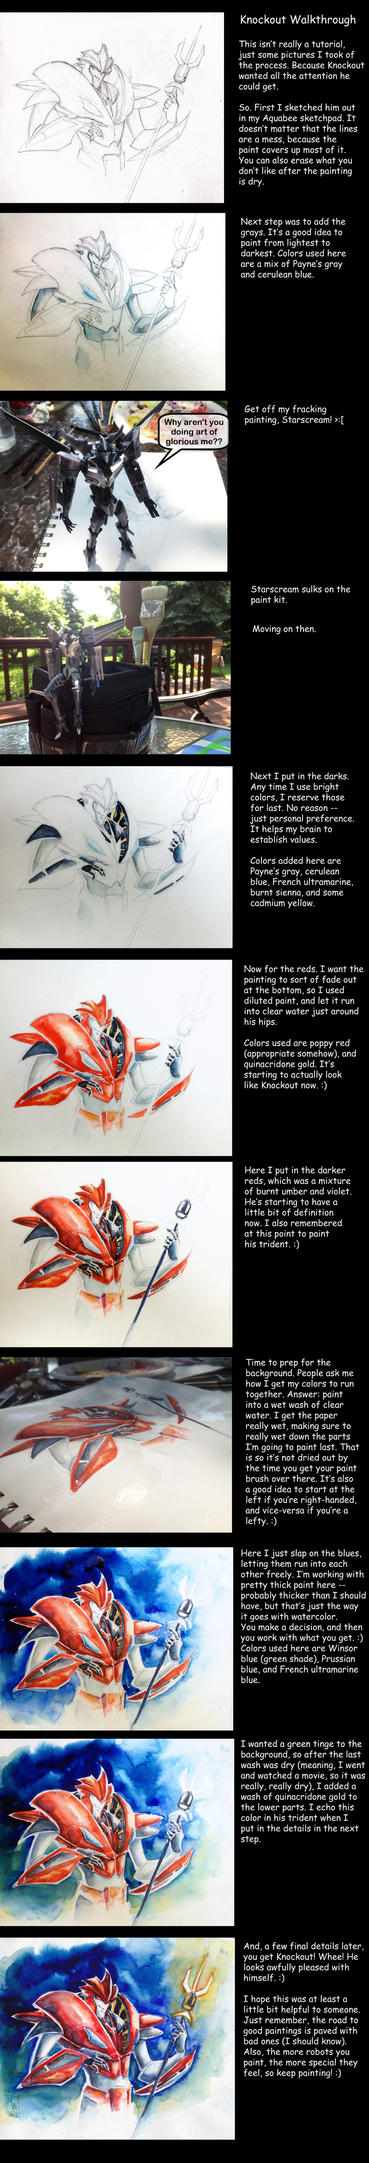 TFP Knockout Painting Walkthrough by The-Starhorse